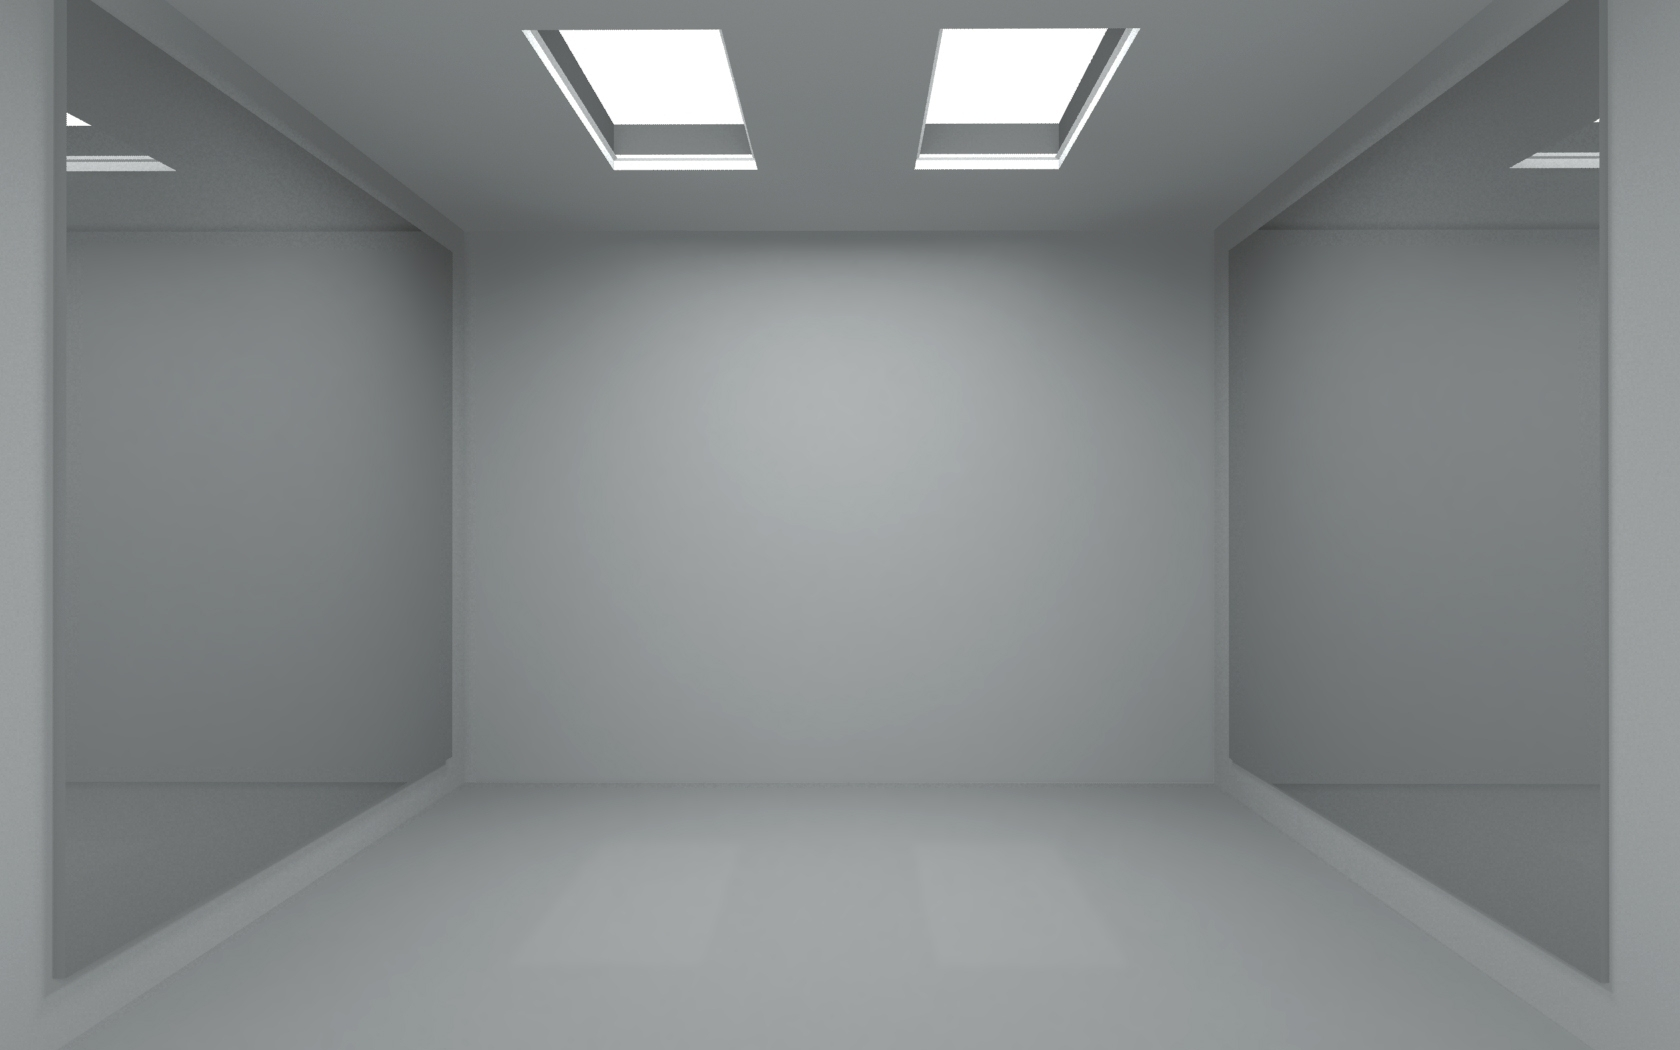 Minimalistic mirror room empty by winampers pro on deviantart for Wallpaper room 3d